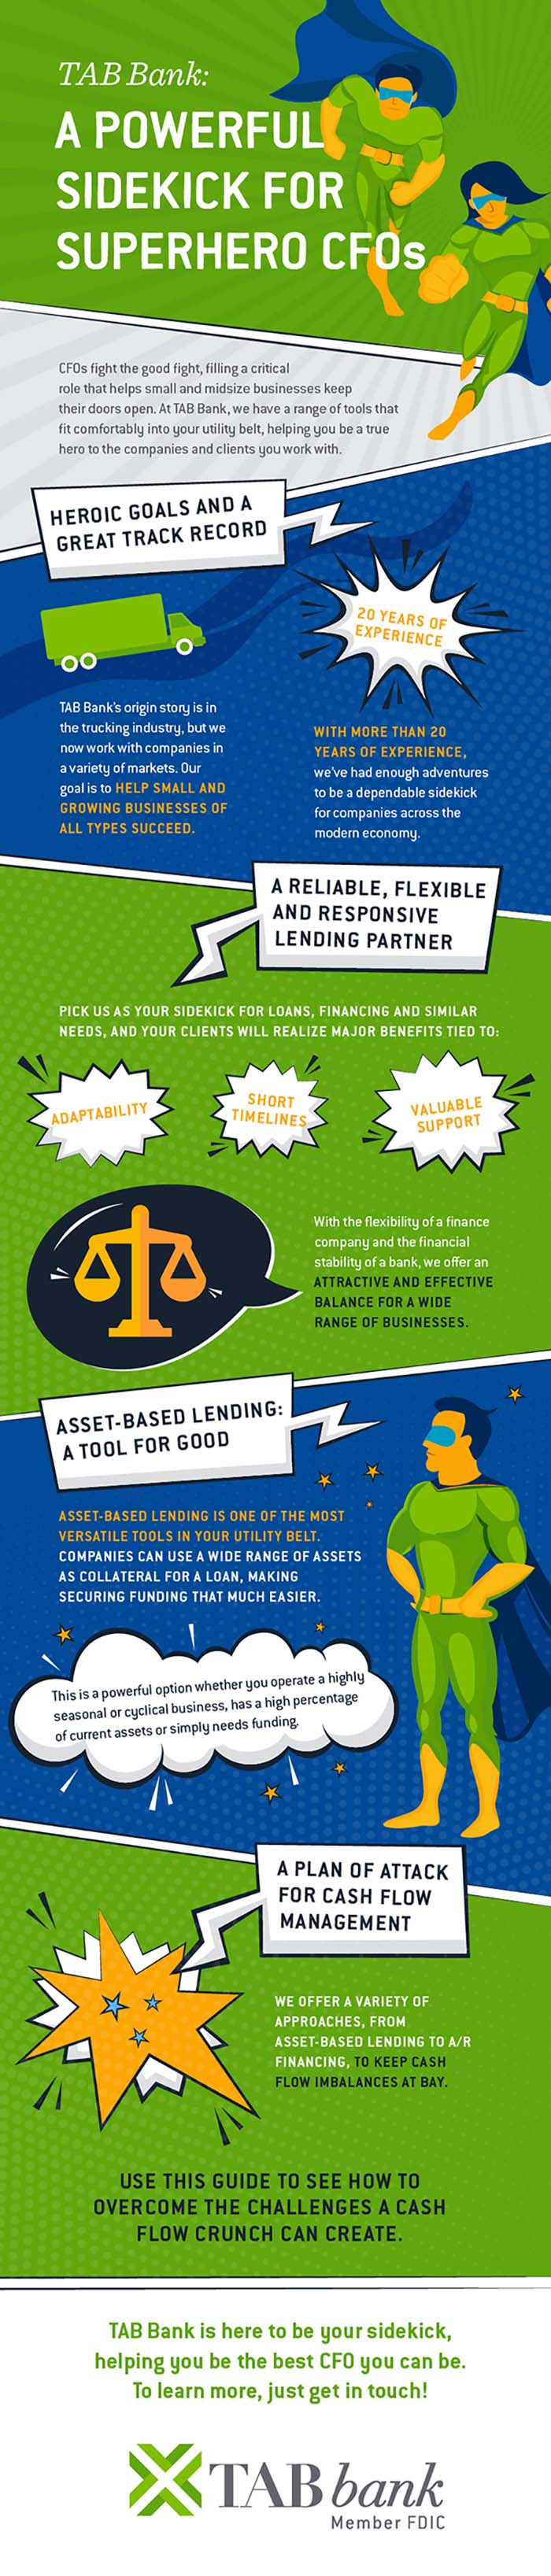 Infographic explaining how TAB Bank is a good partner for CFOs and other managers within a company's finance department. Images include comic book superhero type of graphics as it explains all the ways we can help a business in their time of need.